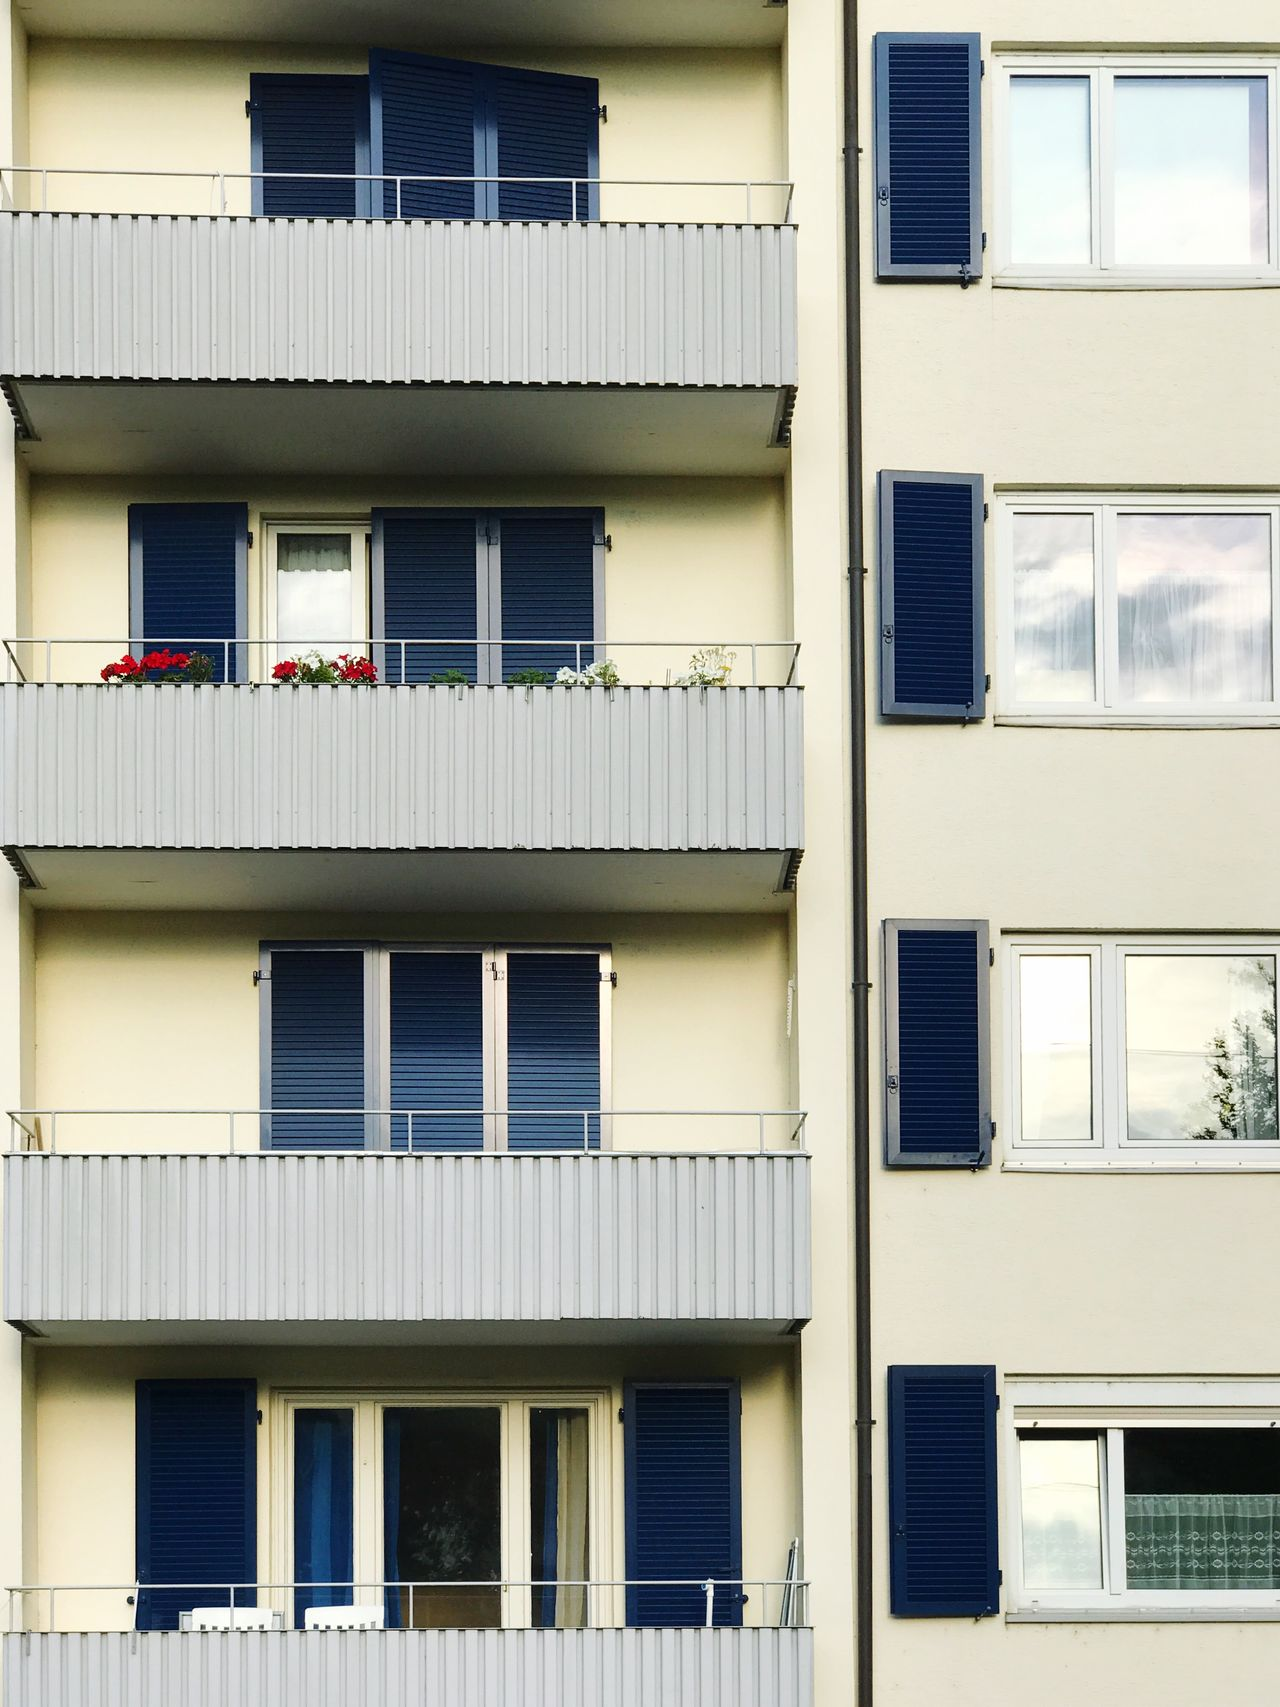 Window Building Exterior Architecture Built Structure Balcony Residential Building Day No People Outdoors City